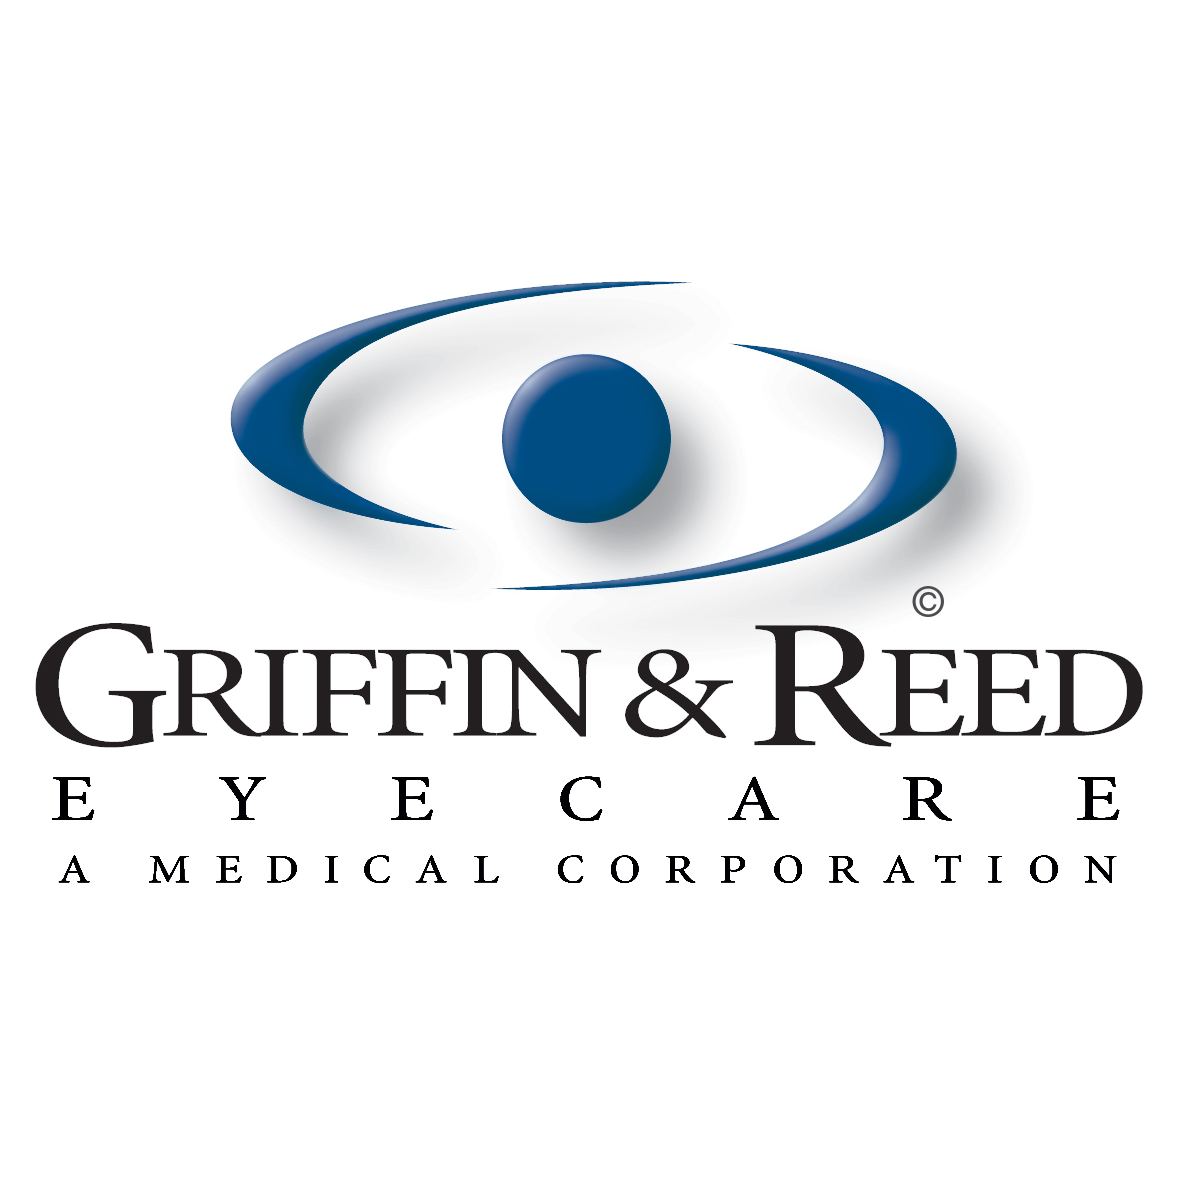 Griffin & Reed Eye Care image 3